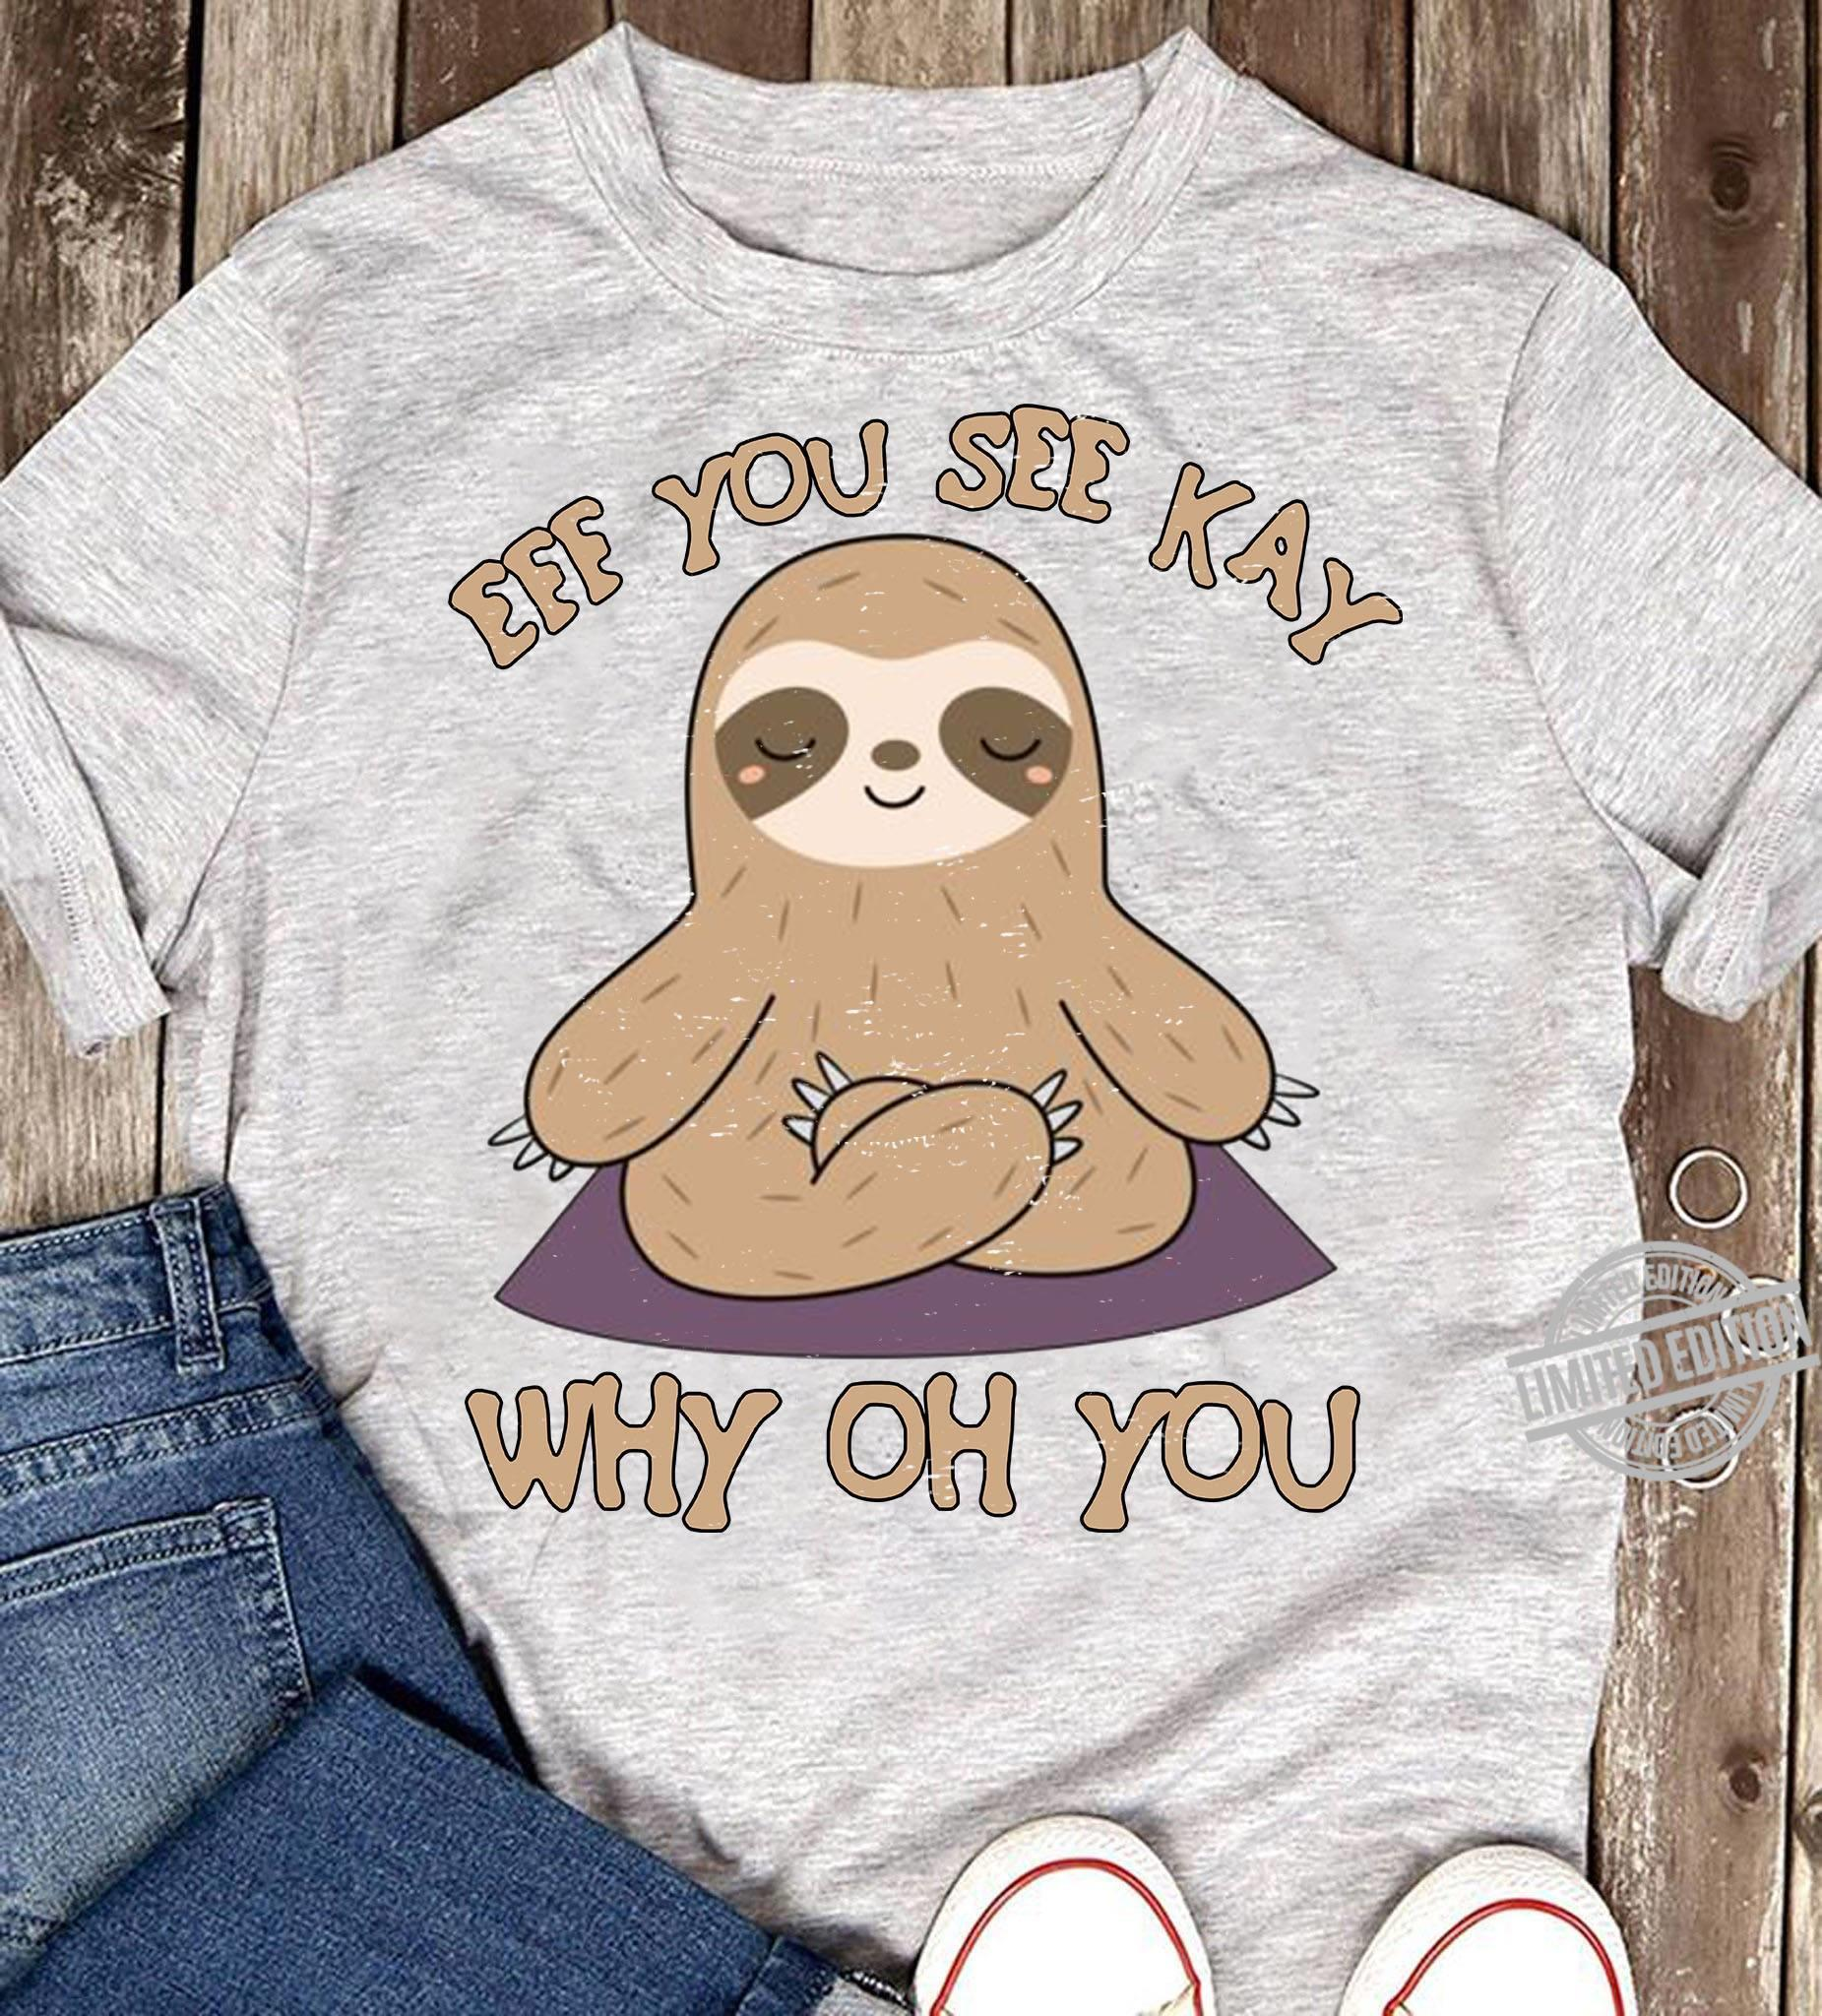 Eff You See Kay Why Oh You Sloth Shirt